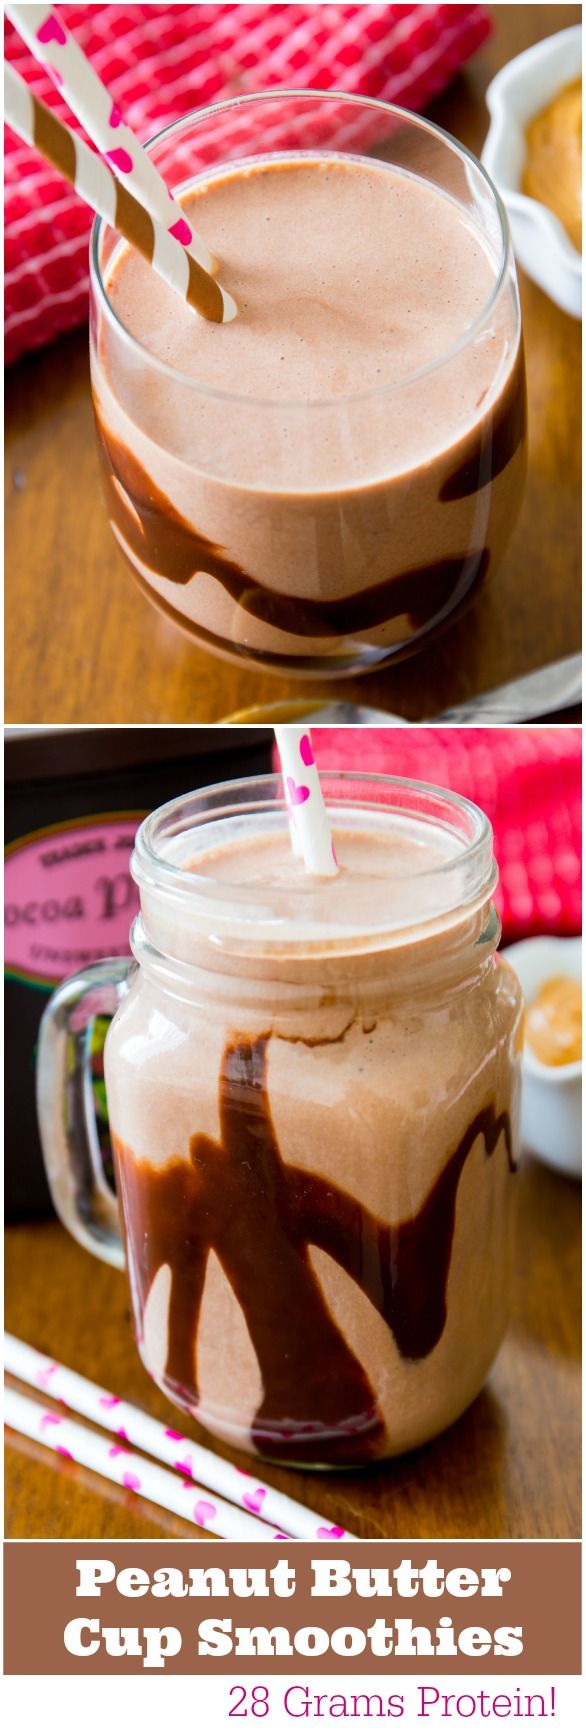 Deliciously simple Chocolate Peanut Butter Protein Smoothies - 28 grams of protein - and they taste like peanut butter cups!